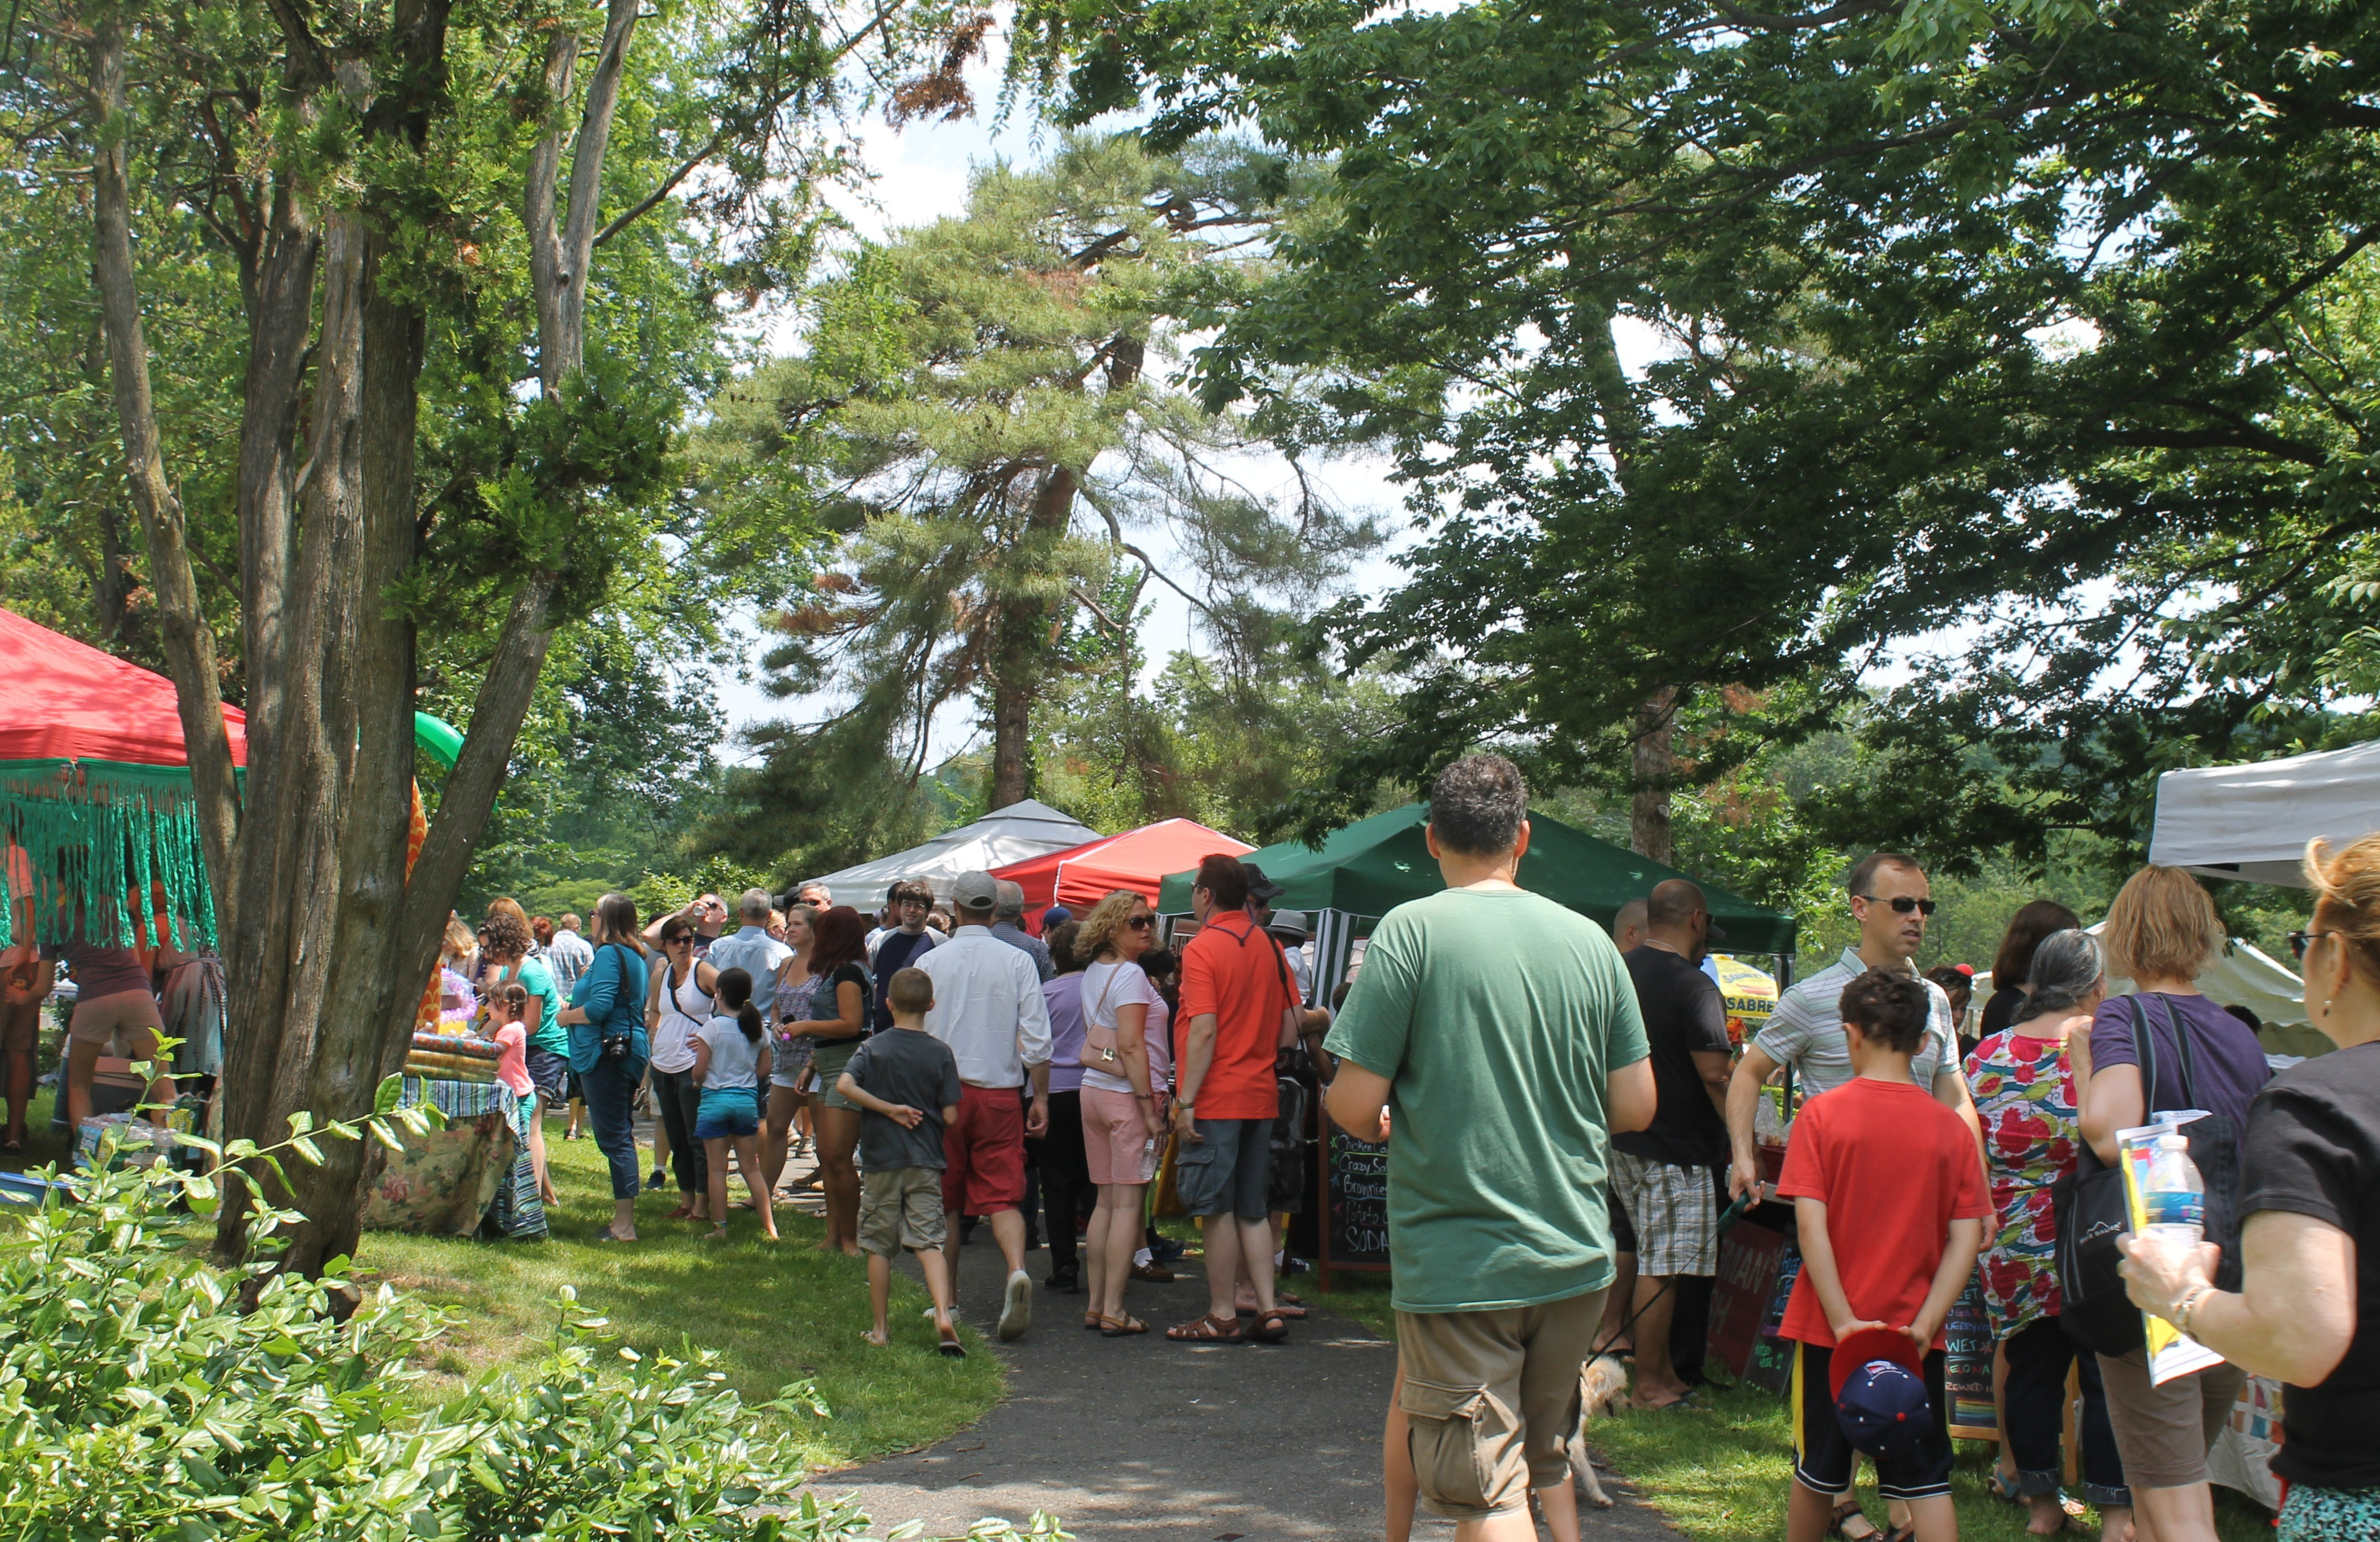 North Jersey Pride Festival Brings Community Entertainment and Calls to Action